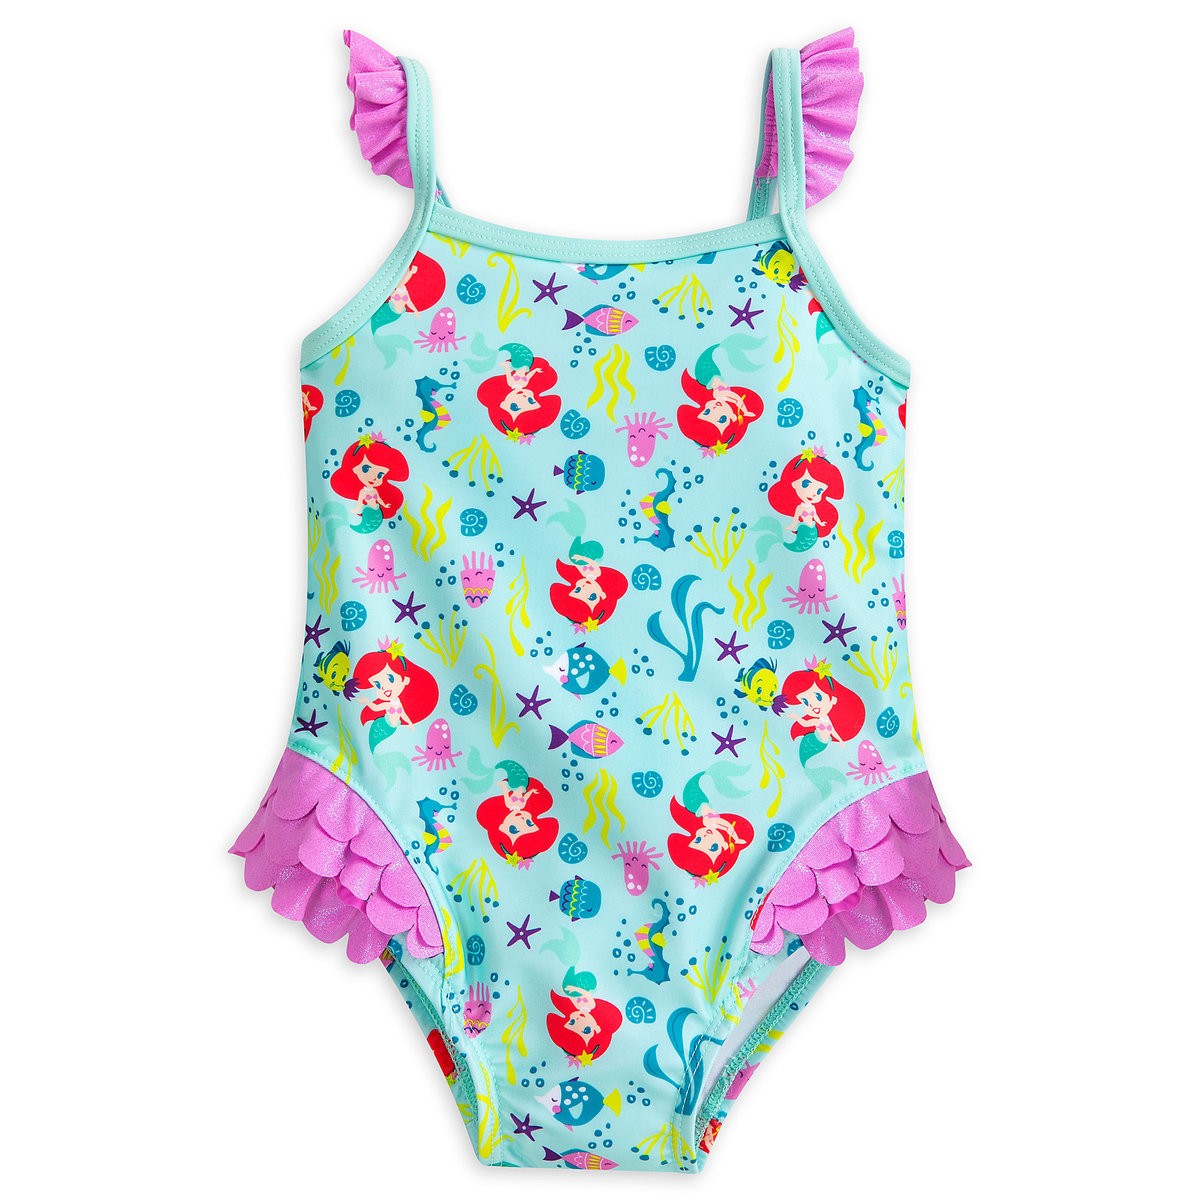 3c864c8b9b983 Product Image of Ariel Swimsuit for Baby # 1